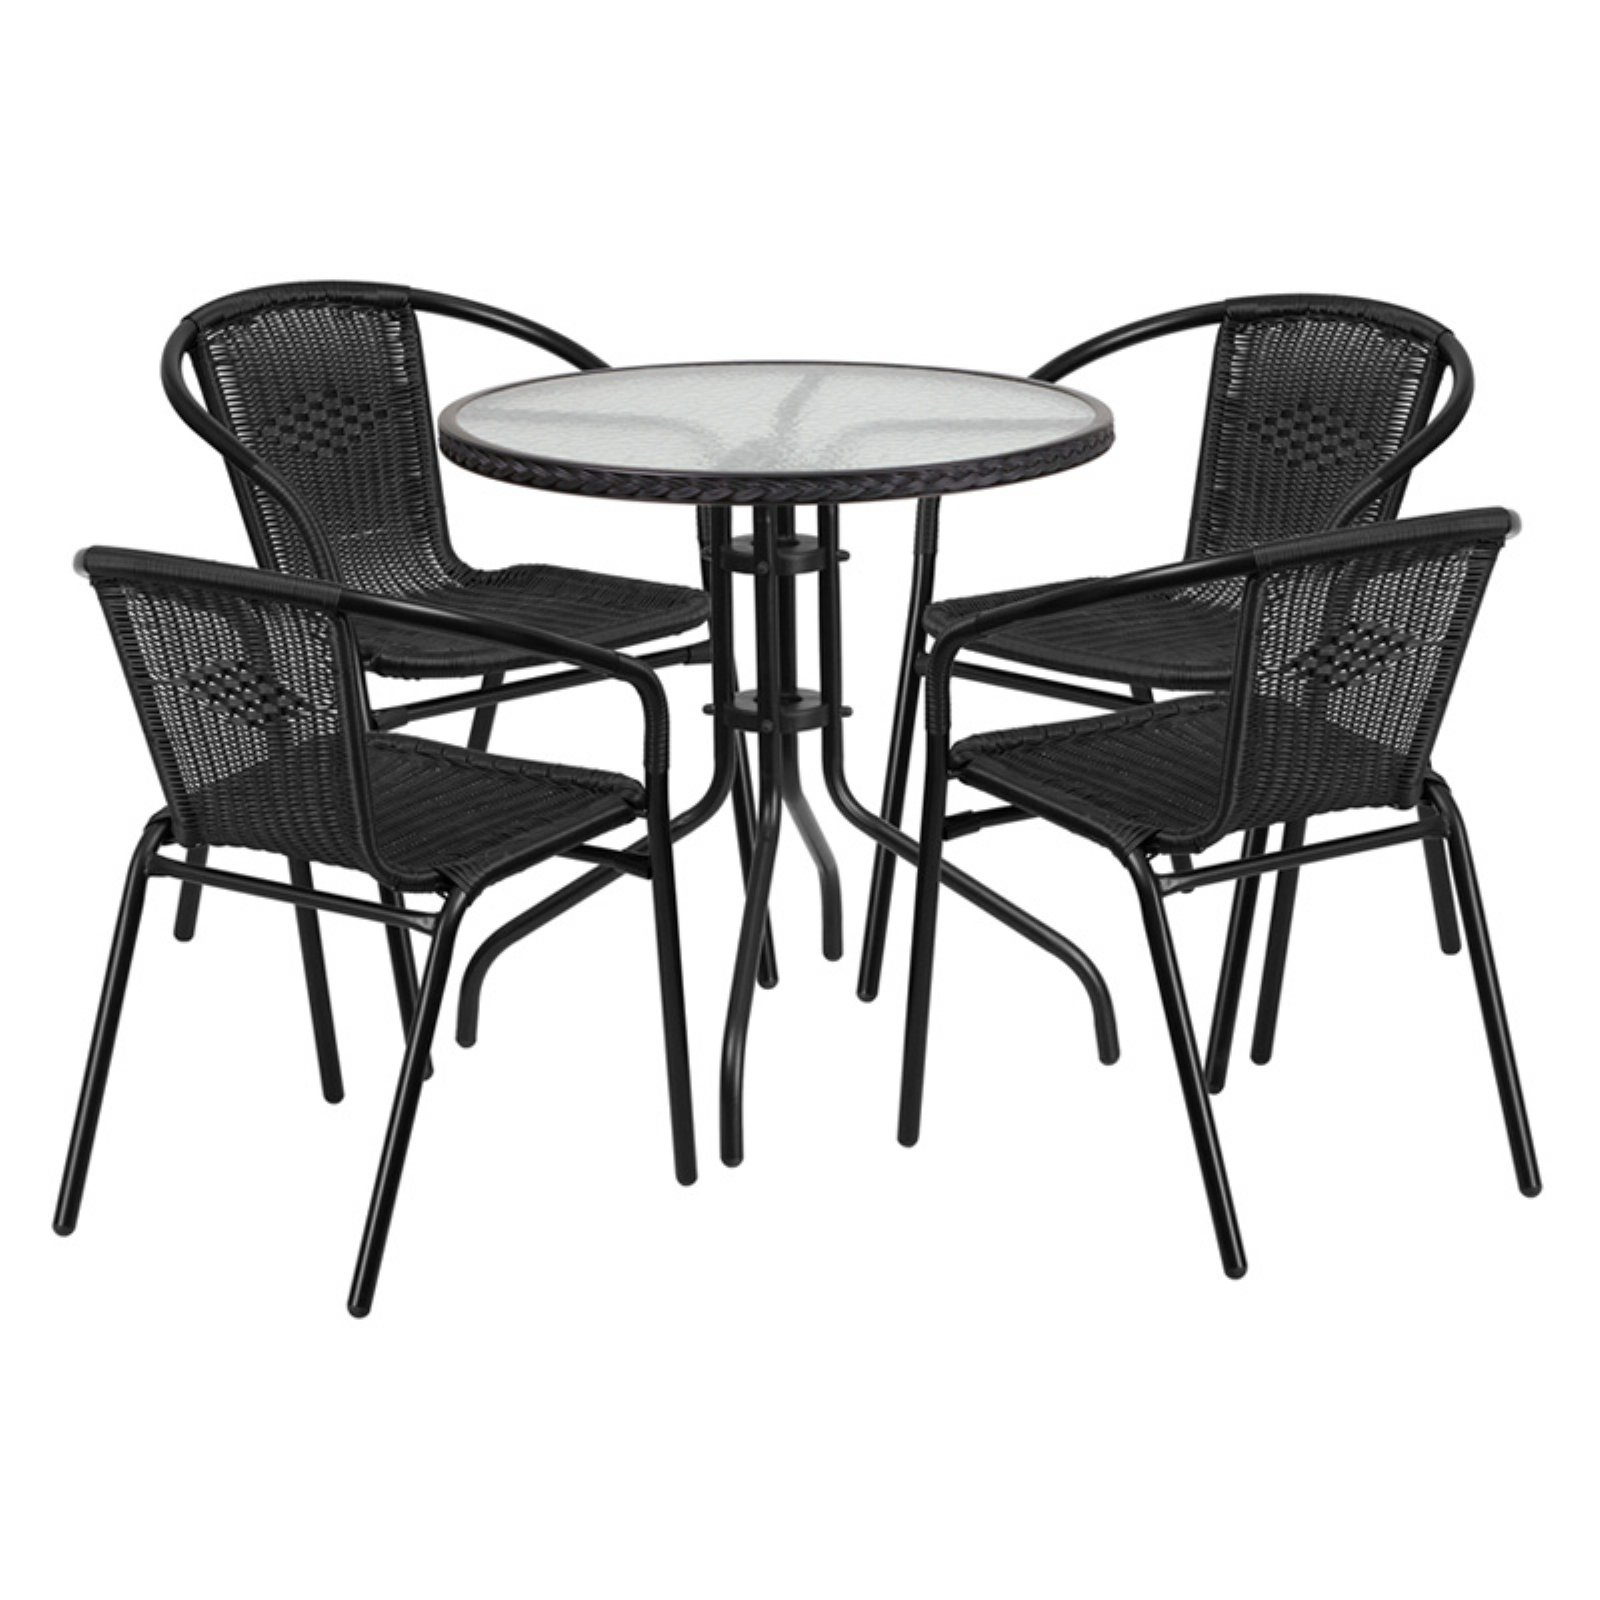 Flash Furniture 28'' Round Glass Metal Table with Rattan Edging and 4 Black Rattan Stack Chairs, Multiple Colors